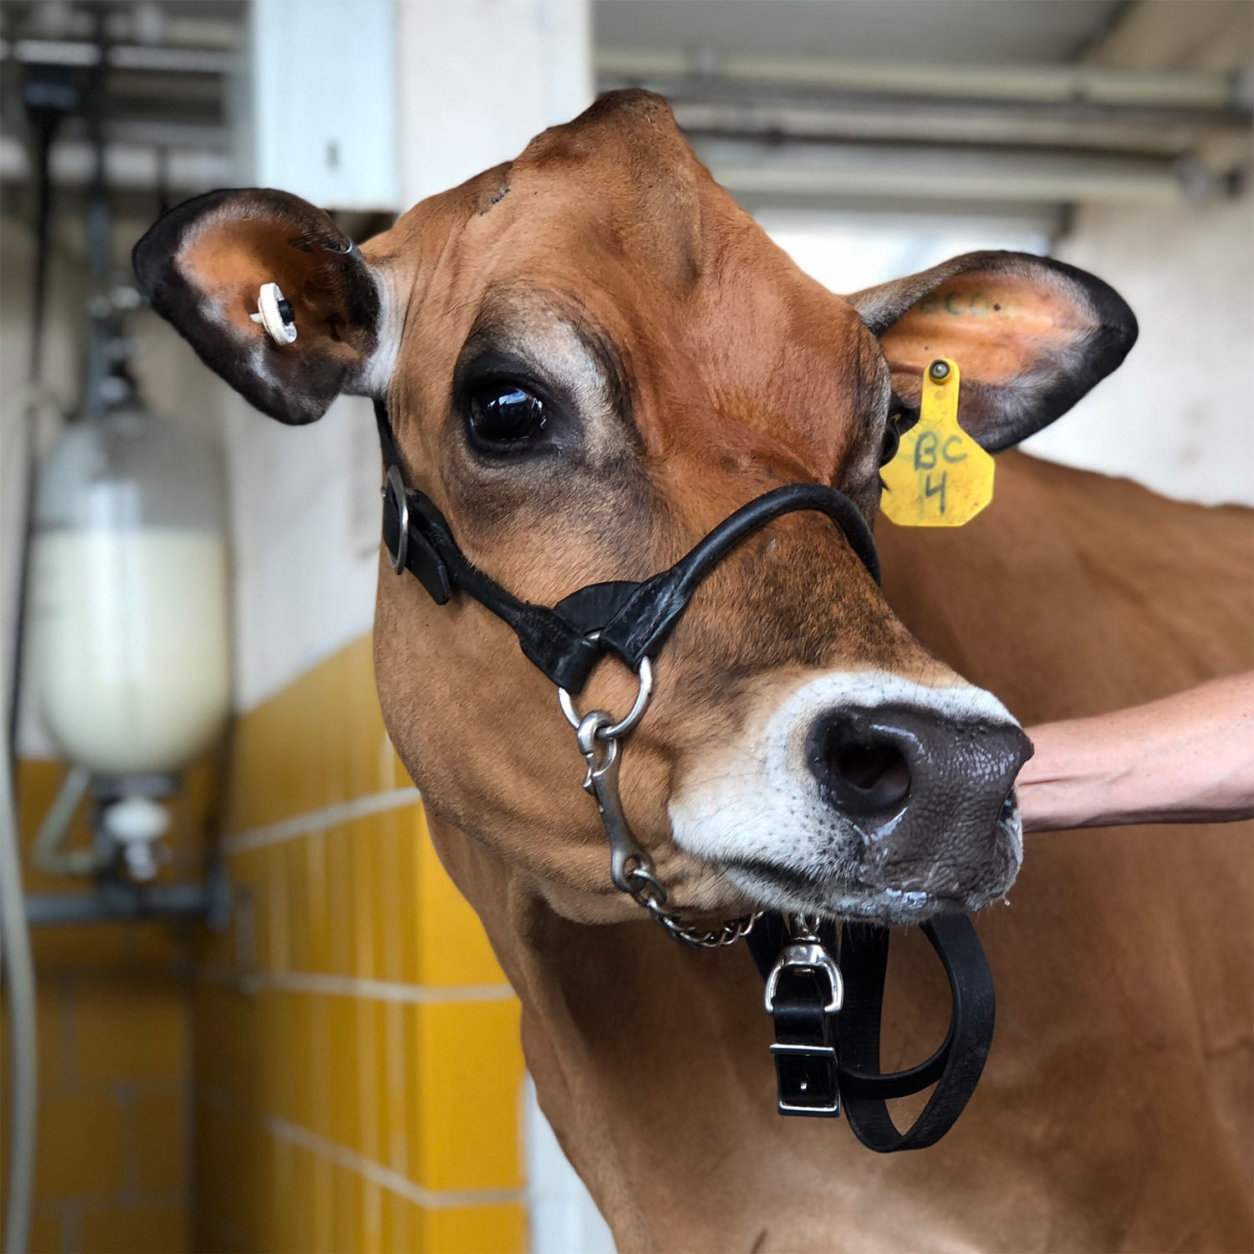 This cow isn't entered in the Pretty Cow Contest, but she could give the others a run for their money. Frederick County's annual fair is a big draw for the region. Kids get a day off of school to attend. (WTOP/Kate Ryan)